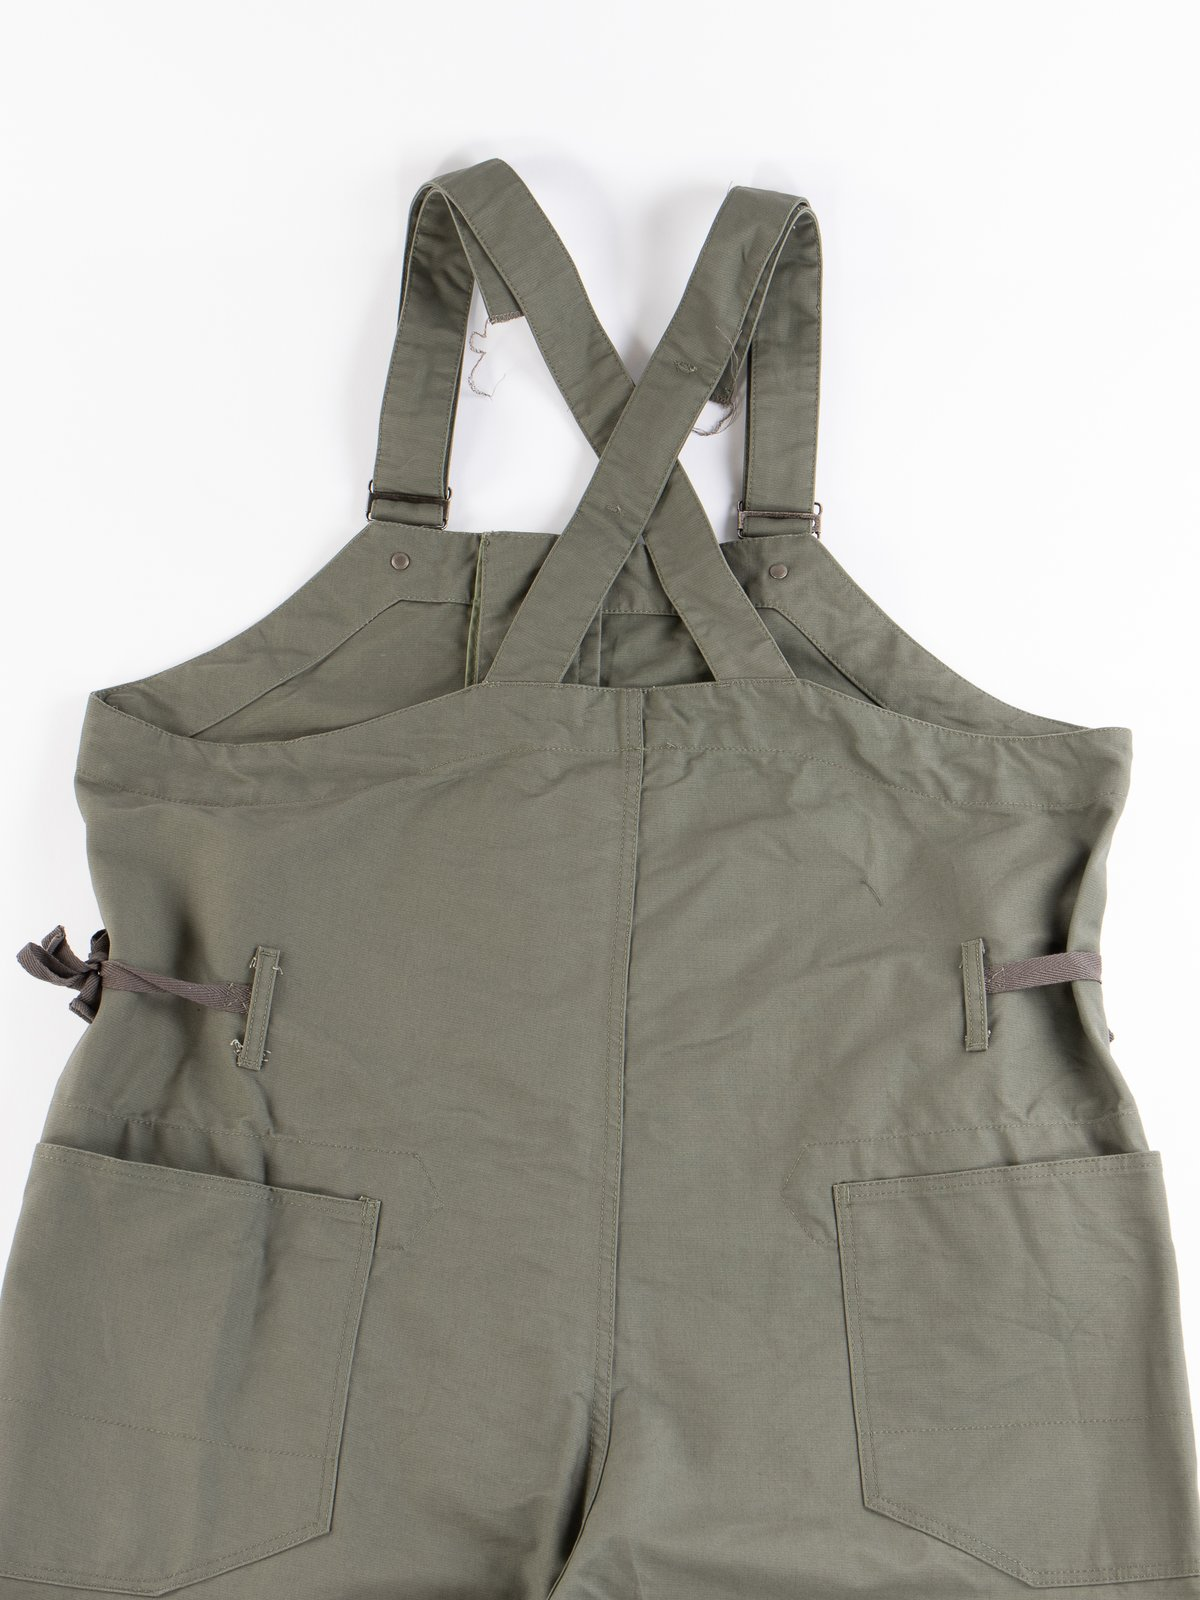 Olive Cotton Double Cloth Overalls - Image 5